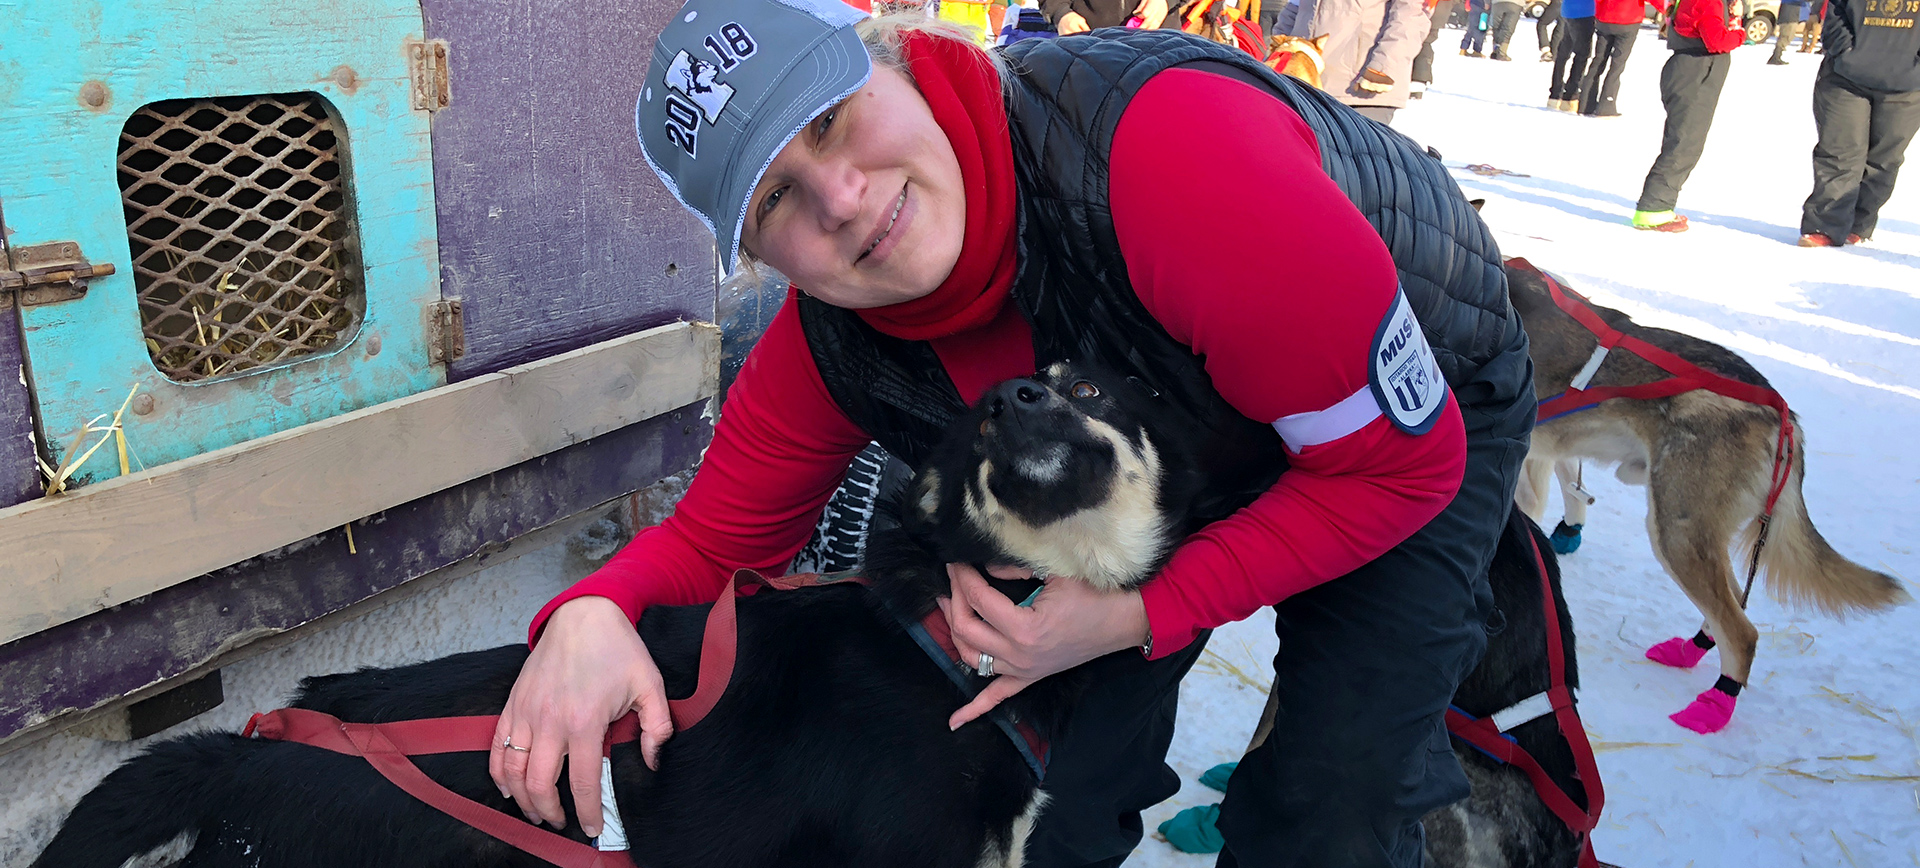 Dr. Jansma at the Iditarod 2018 restart in Willow, Alaska